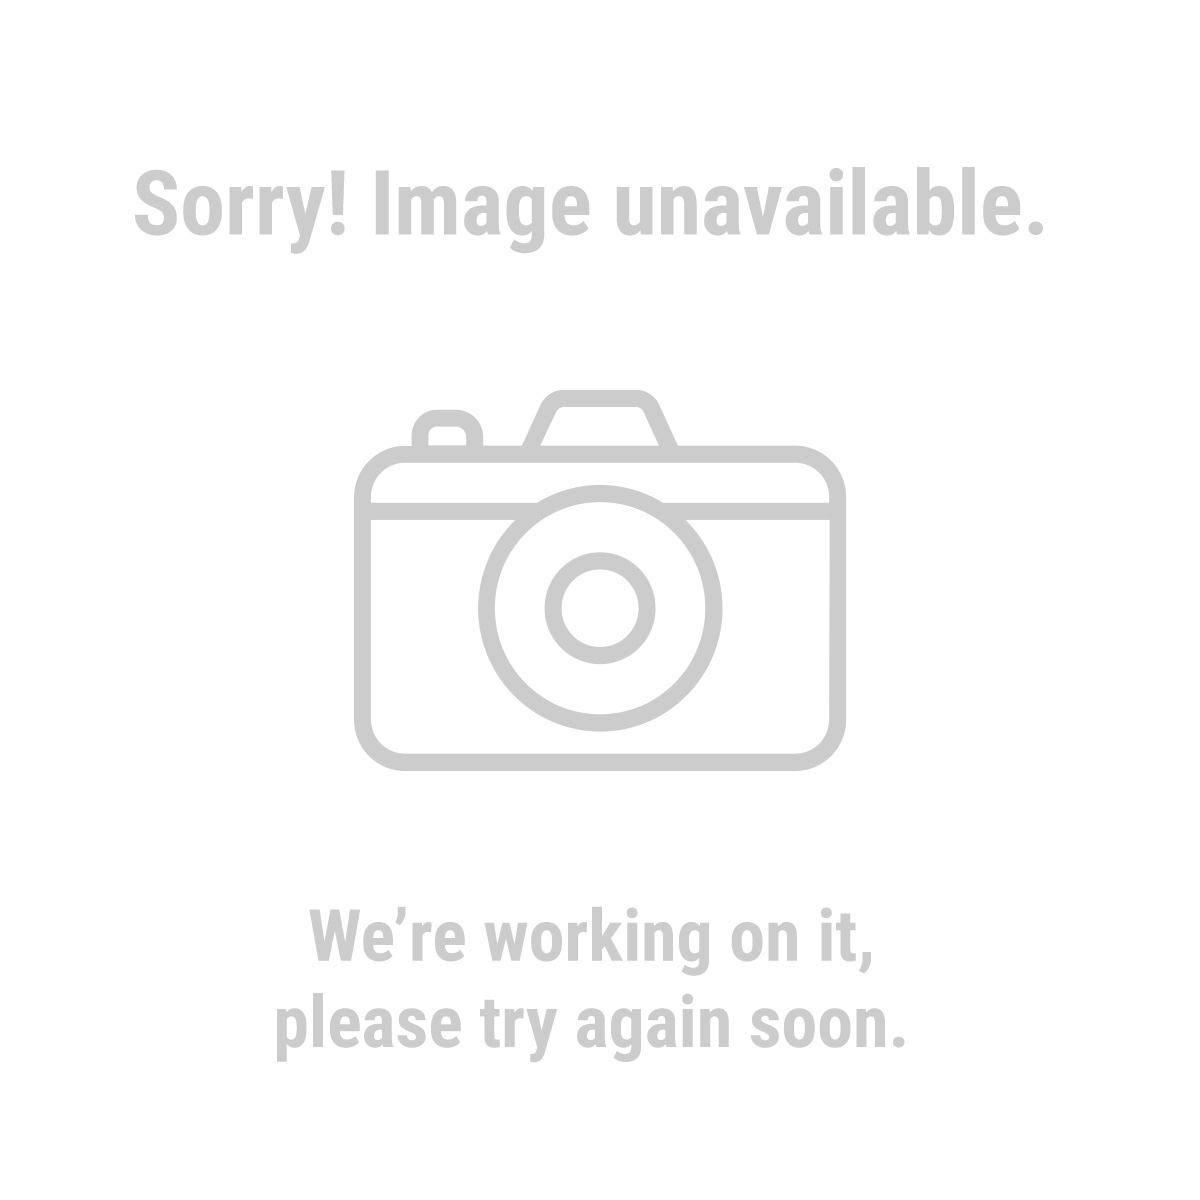 U.S. General 47084 21 Pocket Heavy Duty Tool Belt